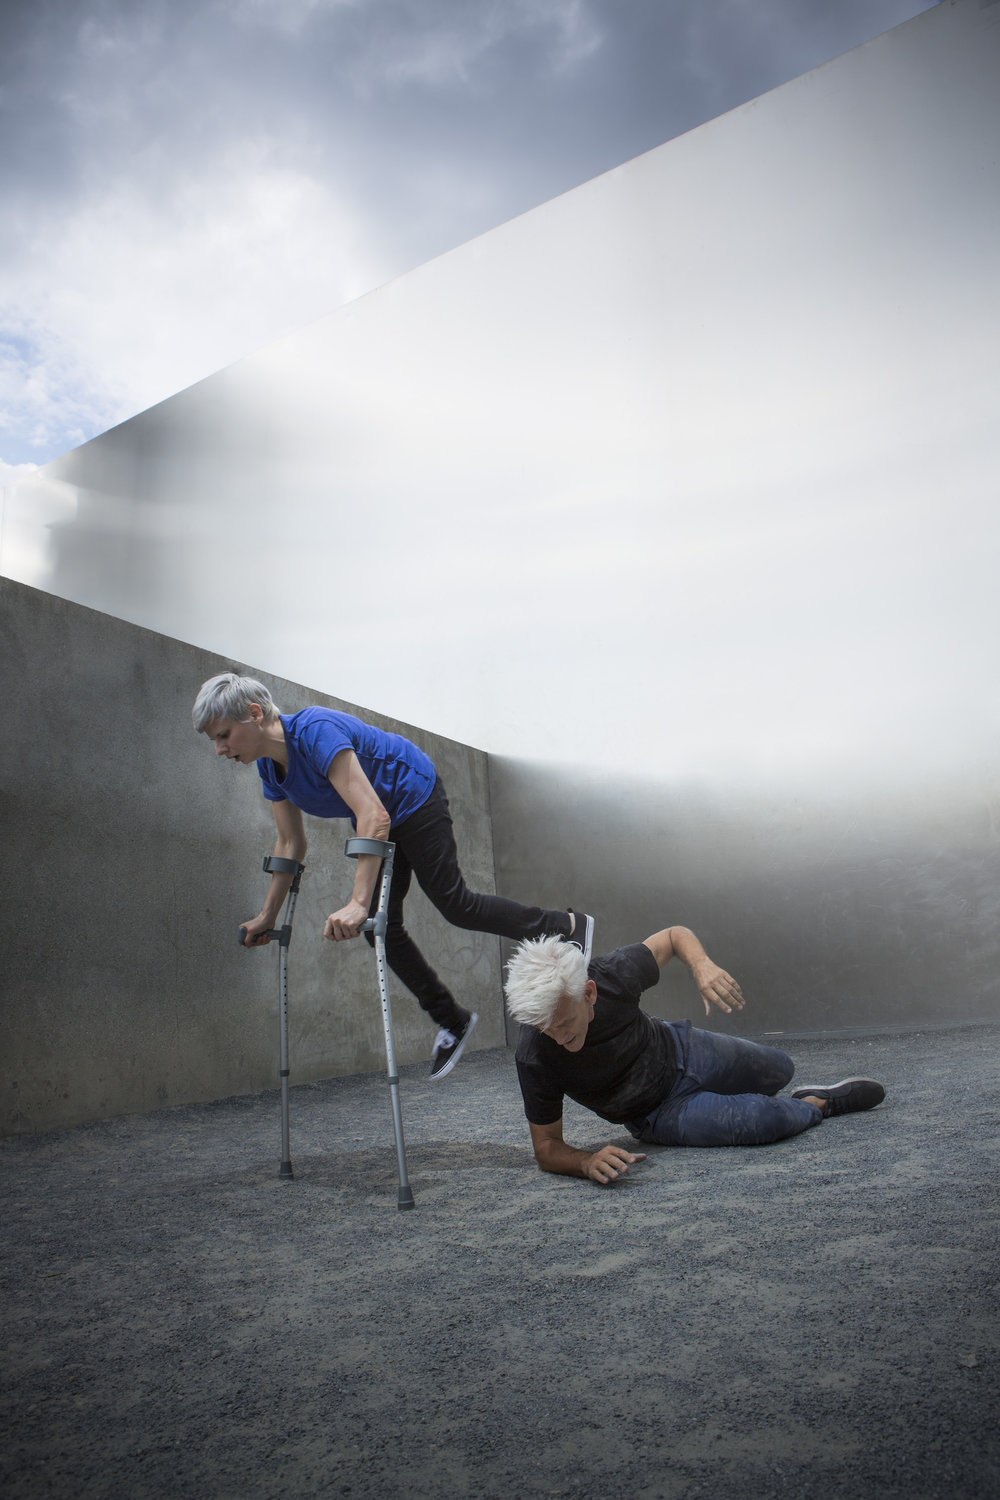 Cunningham (slight with silver hair and blue tee) balances on crutches with 1 foot on neck of Curtis, who lies on gravel ground against cement walls. (photo: Sven Hagolani)